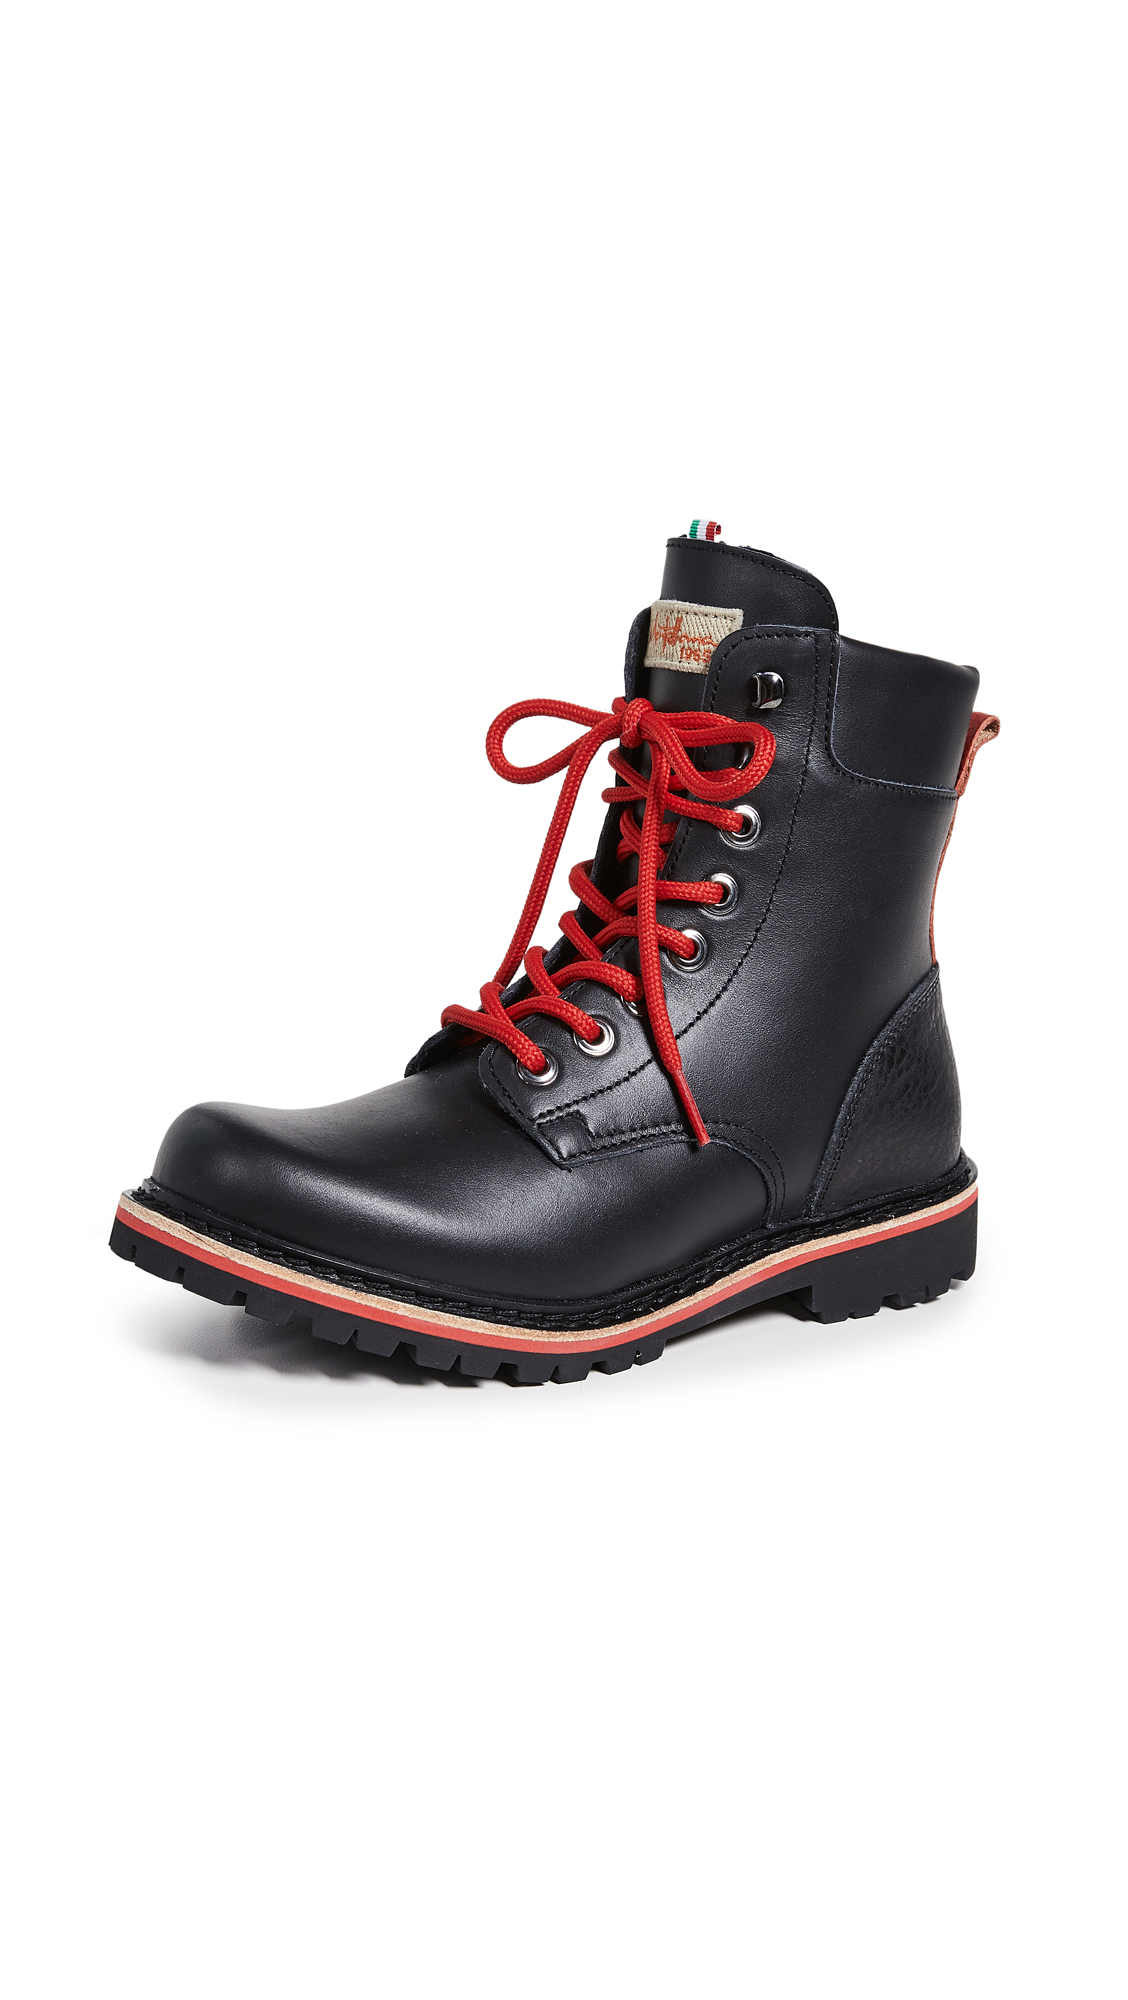 MONTELLIANA Eva Hiker Boots in Black